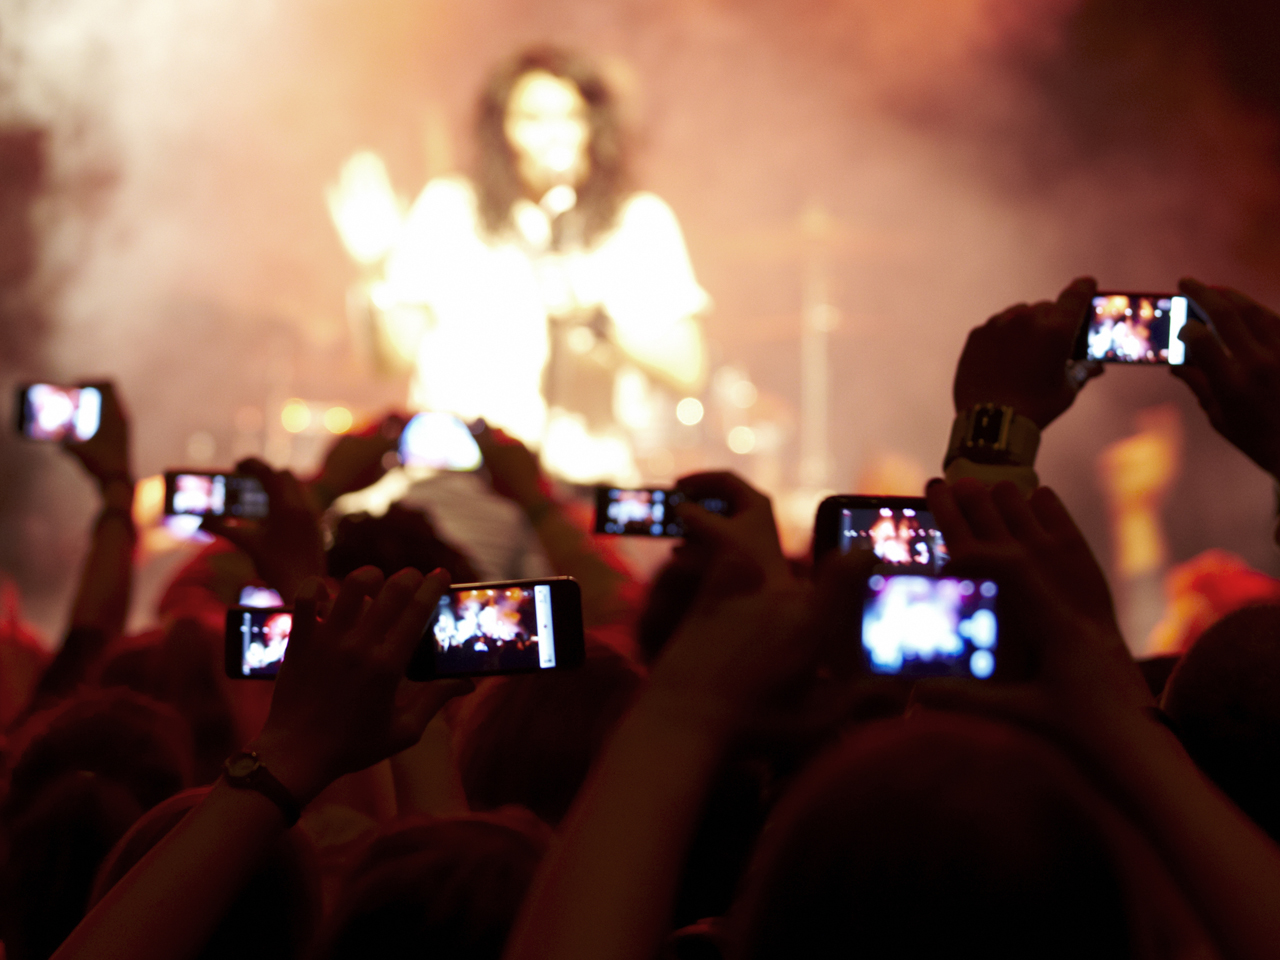 Apple, Apple Patents Technology, Cameras At Concerts, Concerts, Technology, Patents By Apple